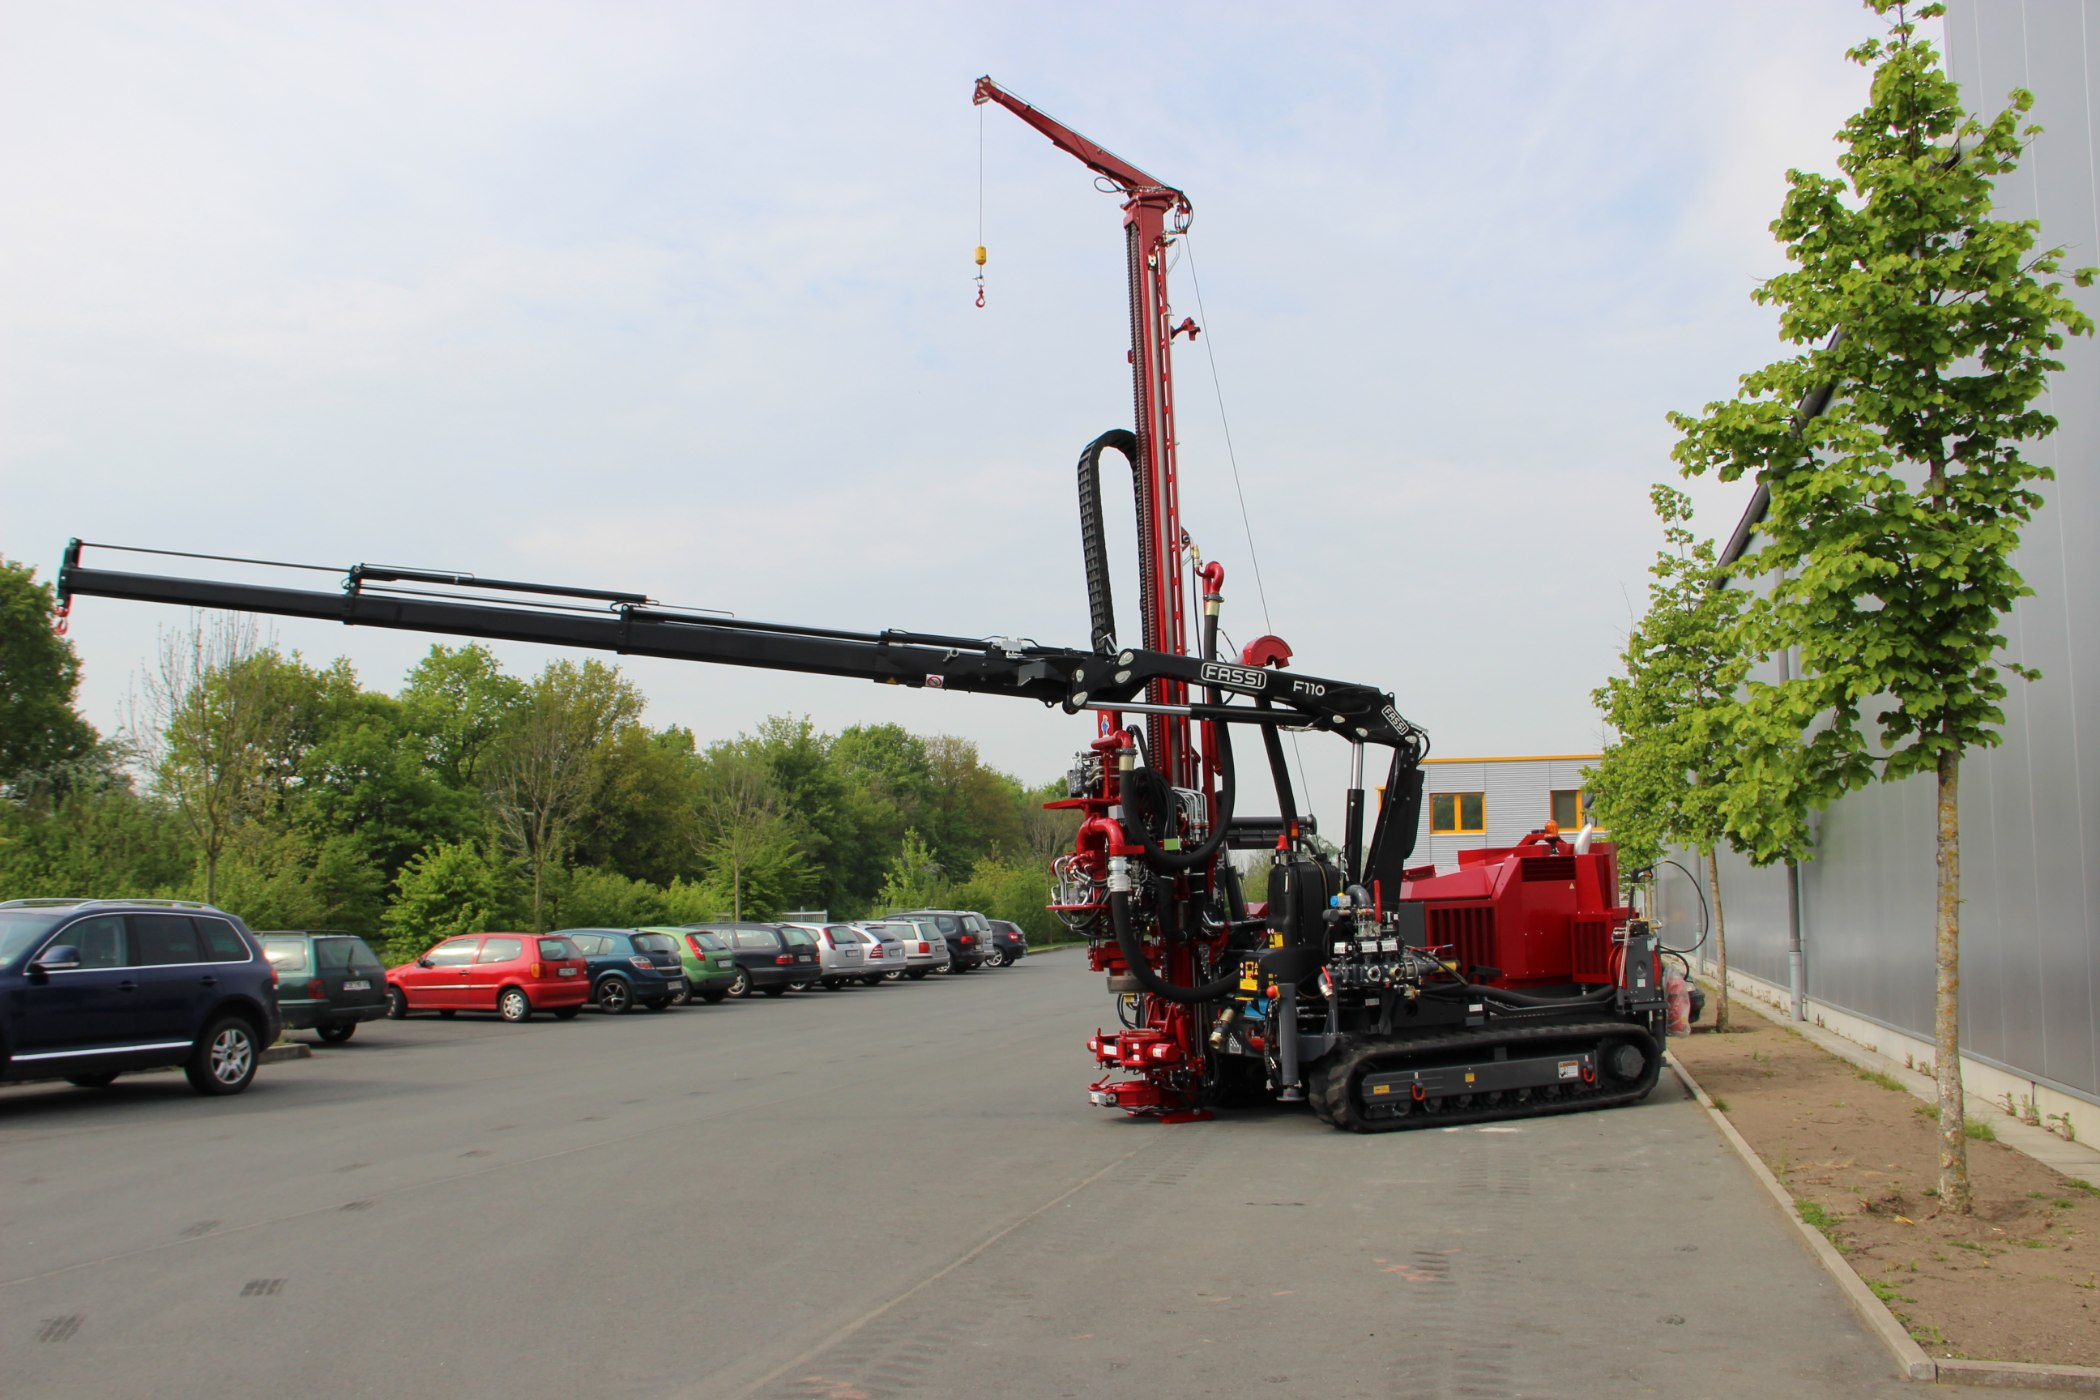 Geotec_Bohrtechnik_Drilling_Geothermiebohrung_Hammerbohrungen_Geothermal-drilling-application_Hammer-drilling_Rotomax_XL_GTKi_01-IMG_5017